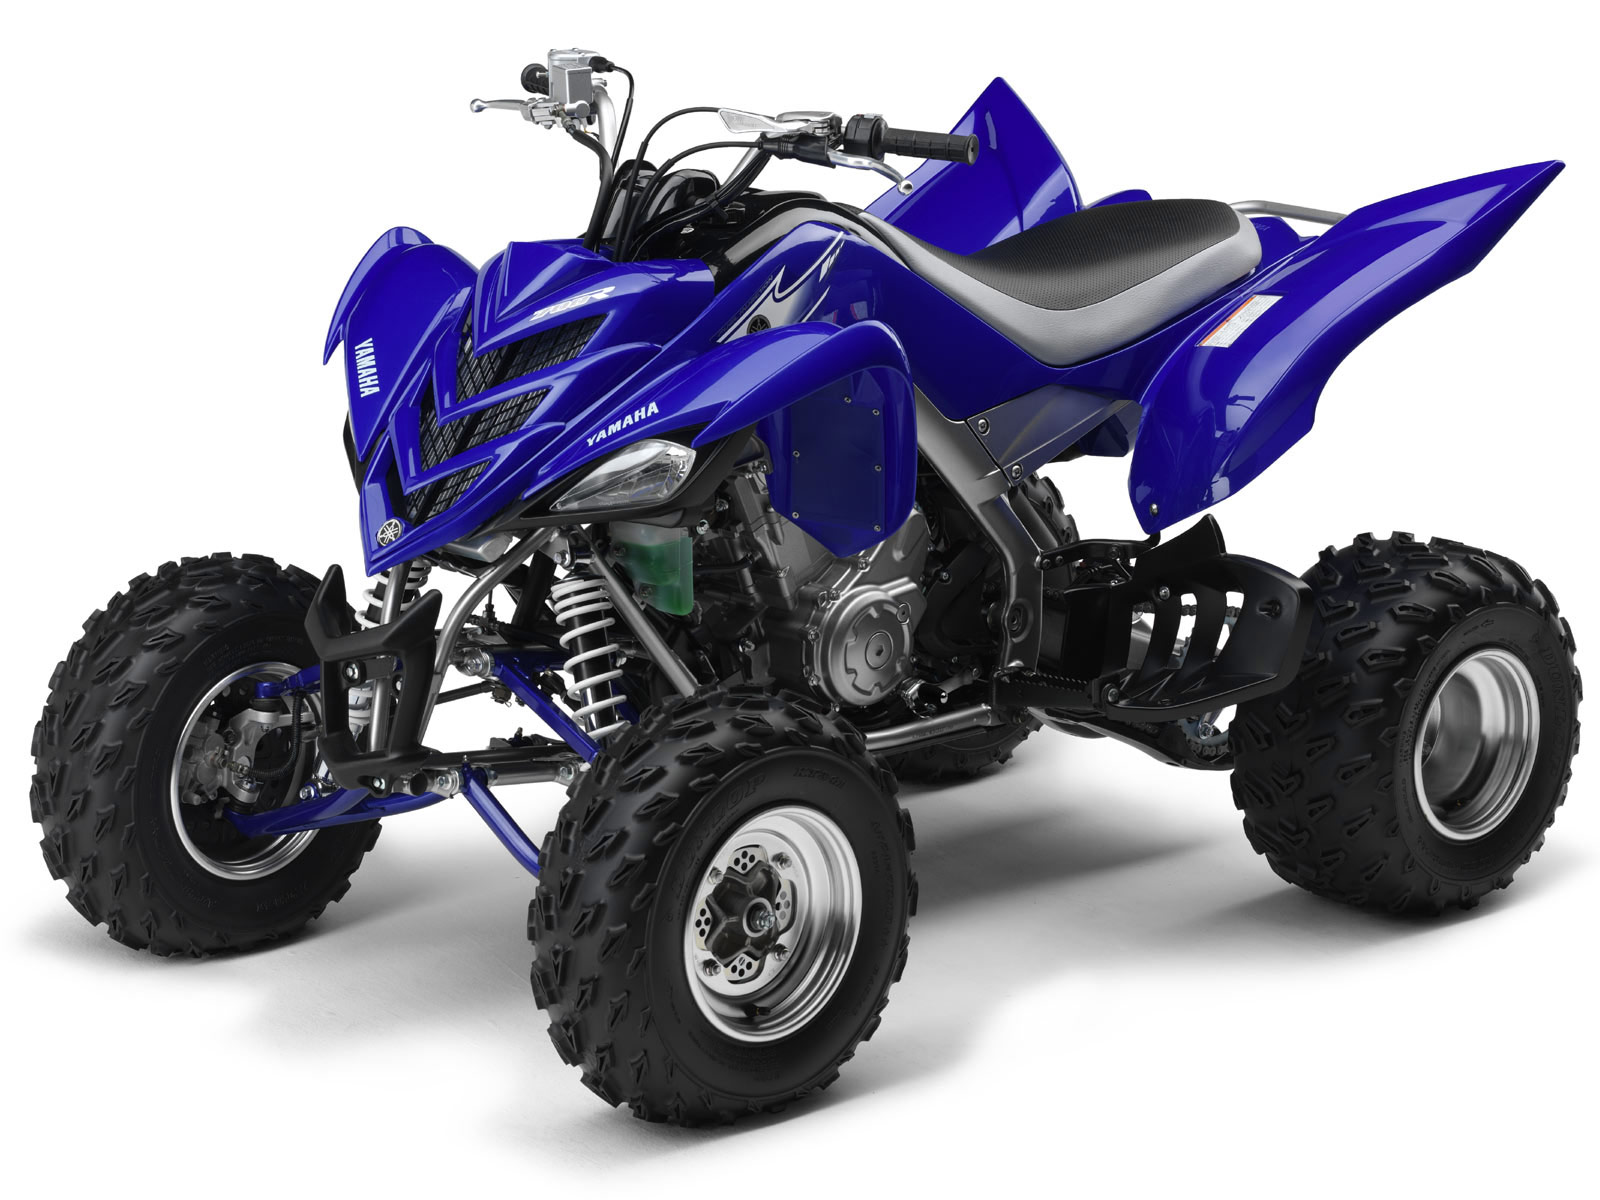 2007 yamaha raptor 700r atv pictures specs insurance info. Black Bedroom Furniture Sets. Home Design Ideas